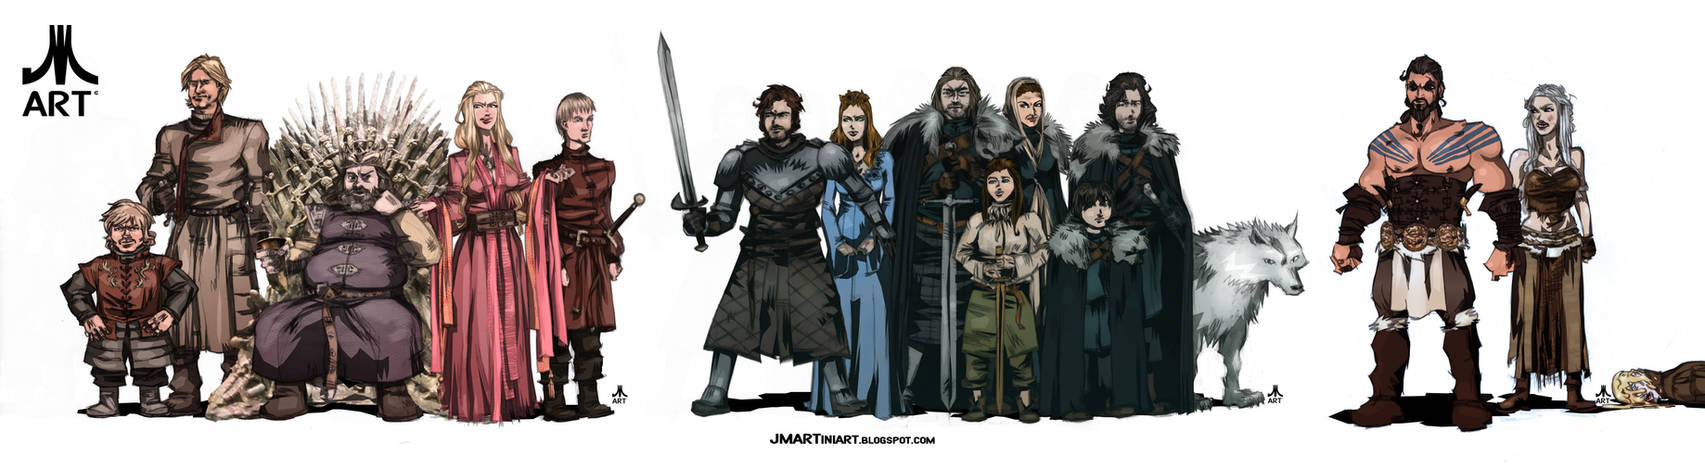 Game of Thrones SEASON ONE CAST by jasinmartin